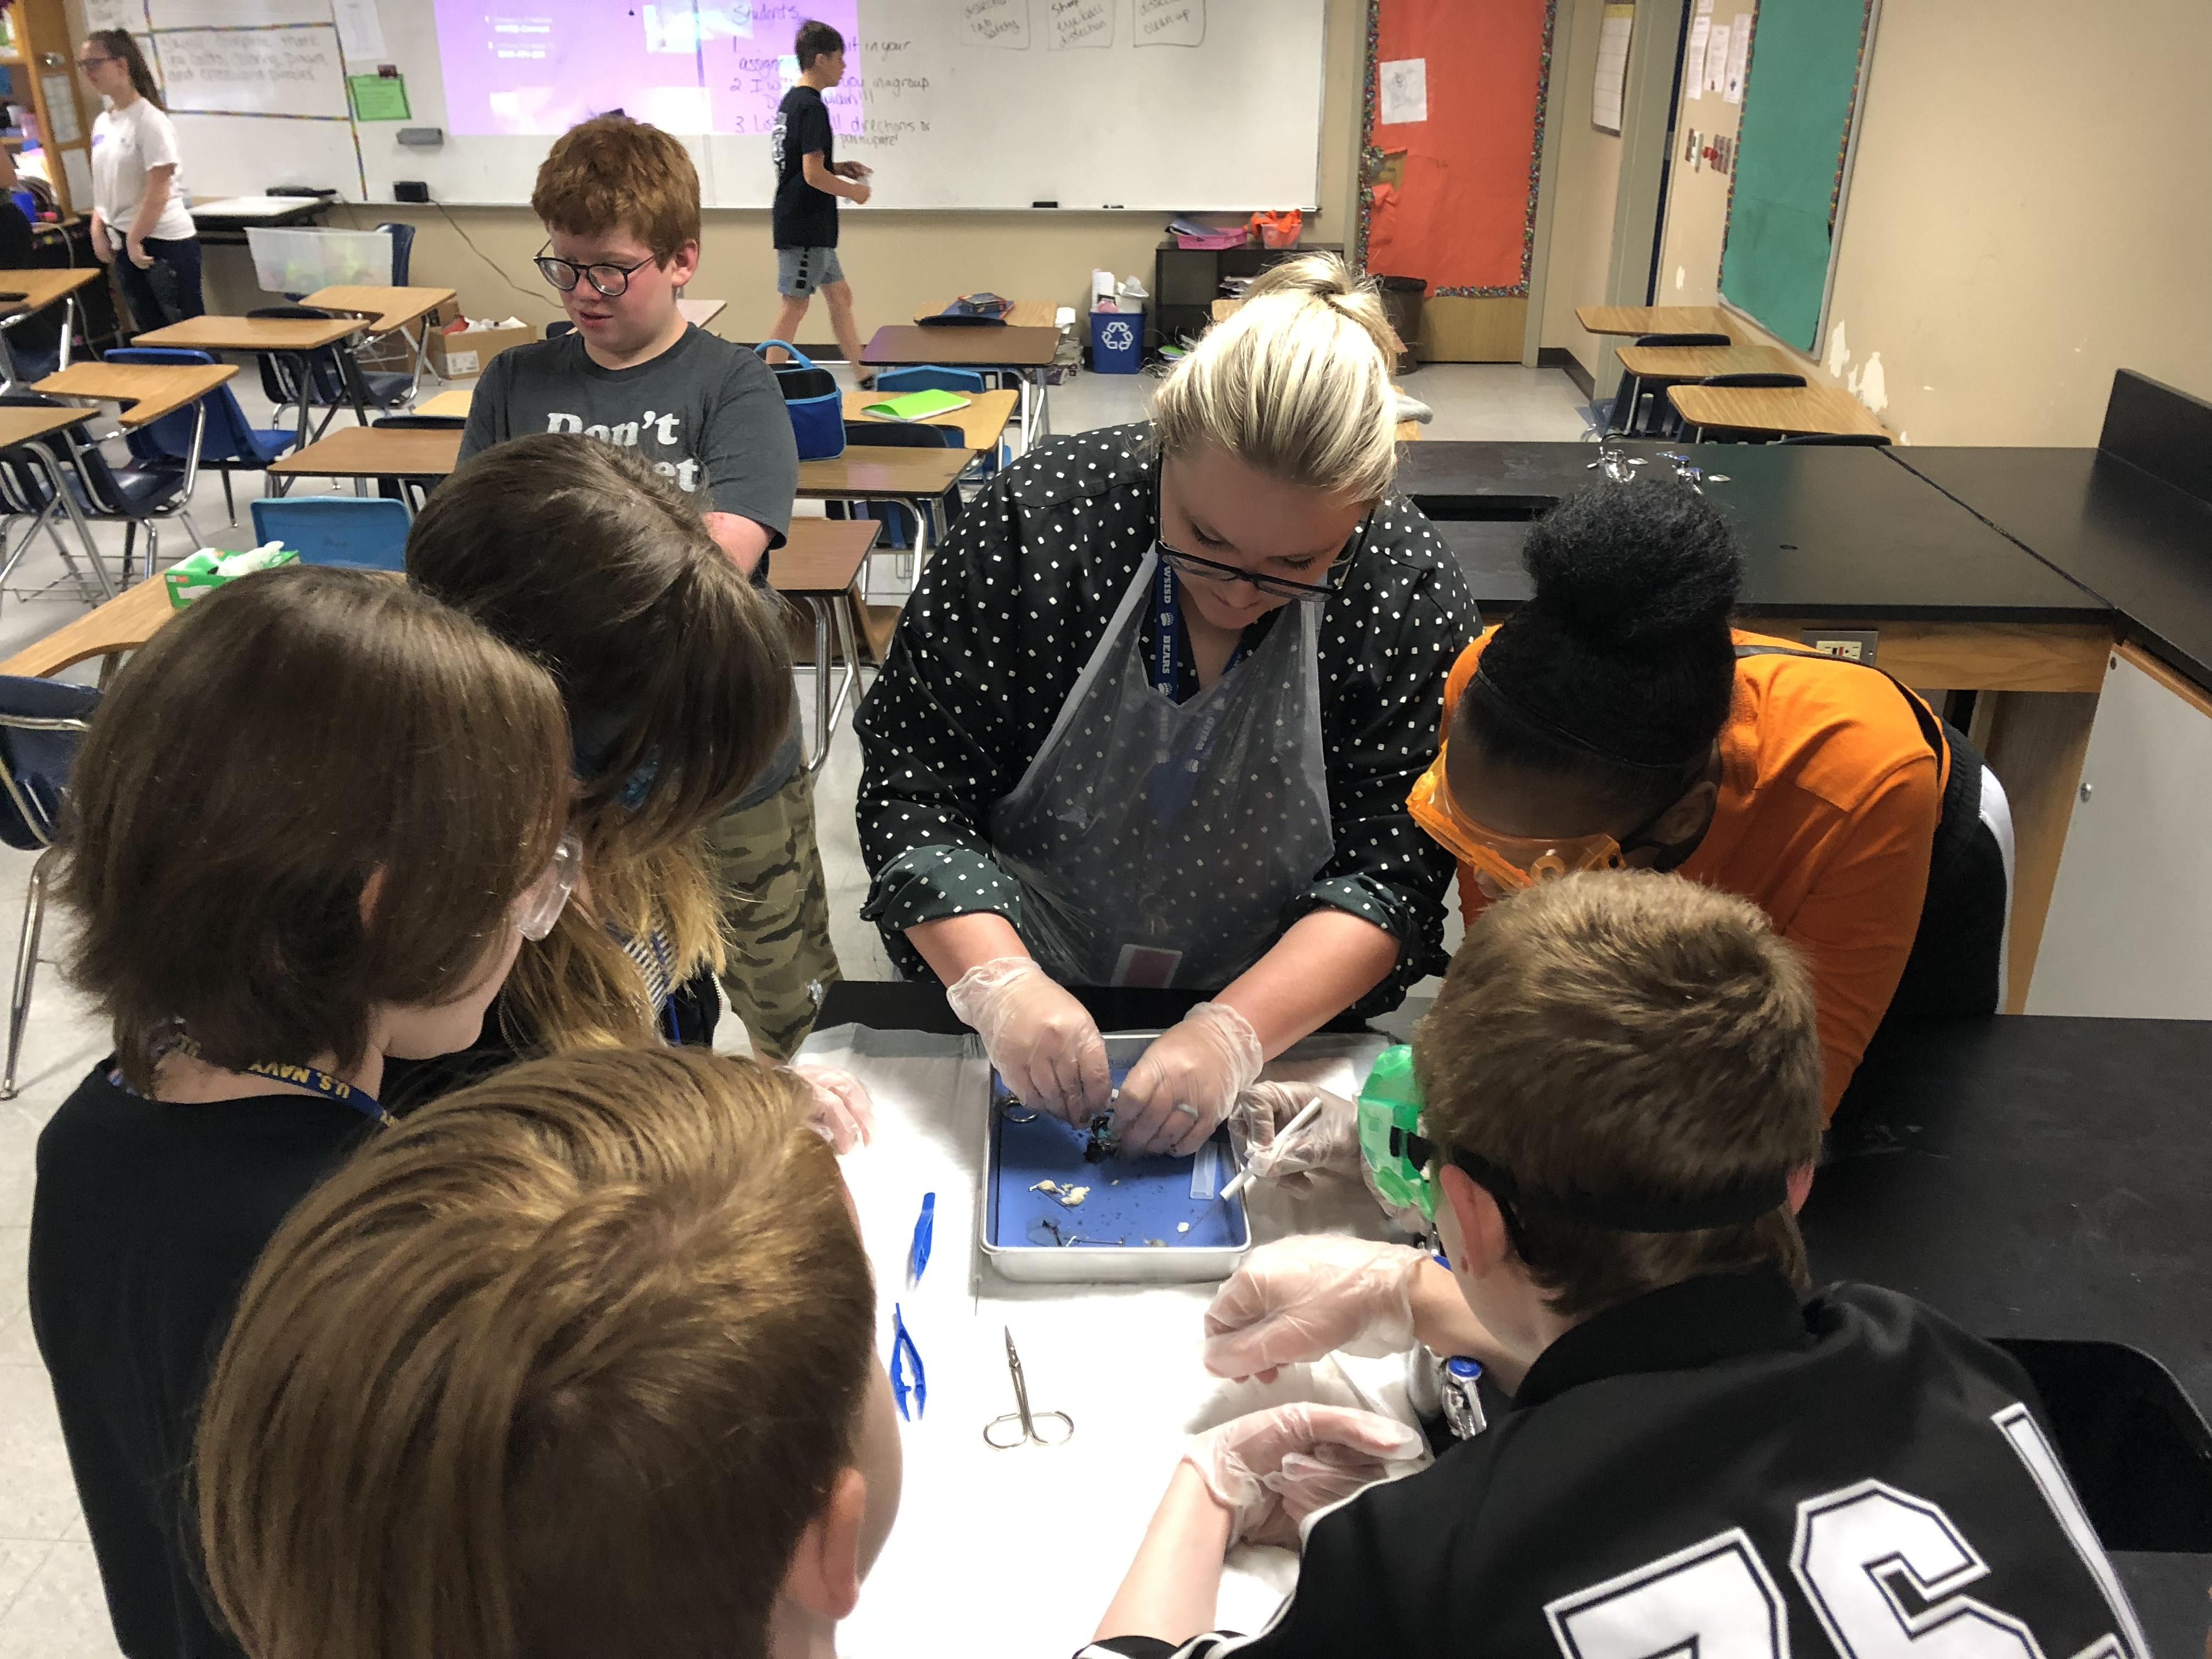 xSeventh graders in Melanie Meredith's science class didn't stop learning during the last week of school. They further explored their unit on body systems and dissected a sheep's eyeball!